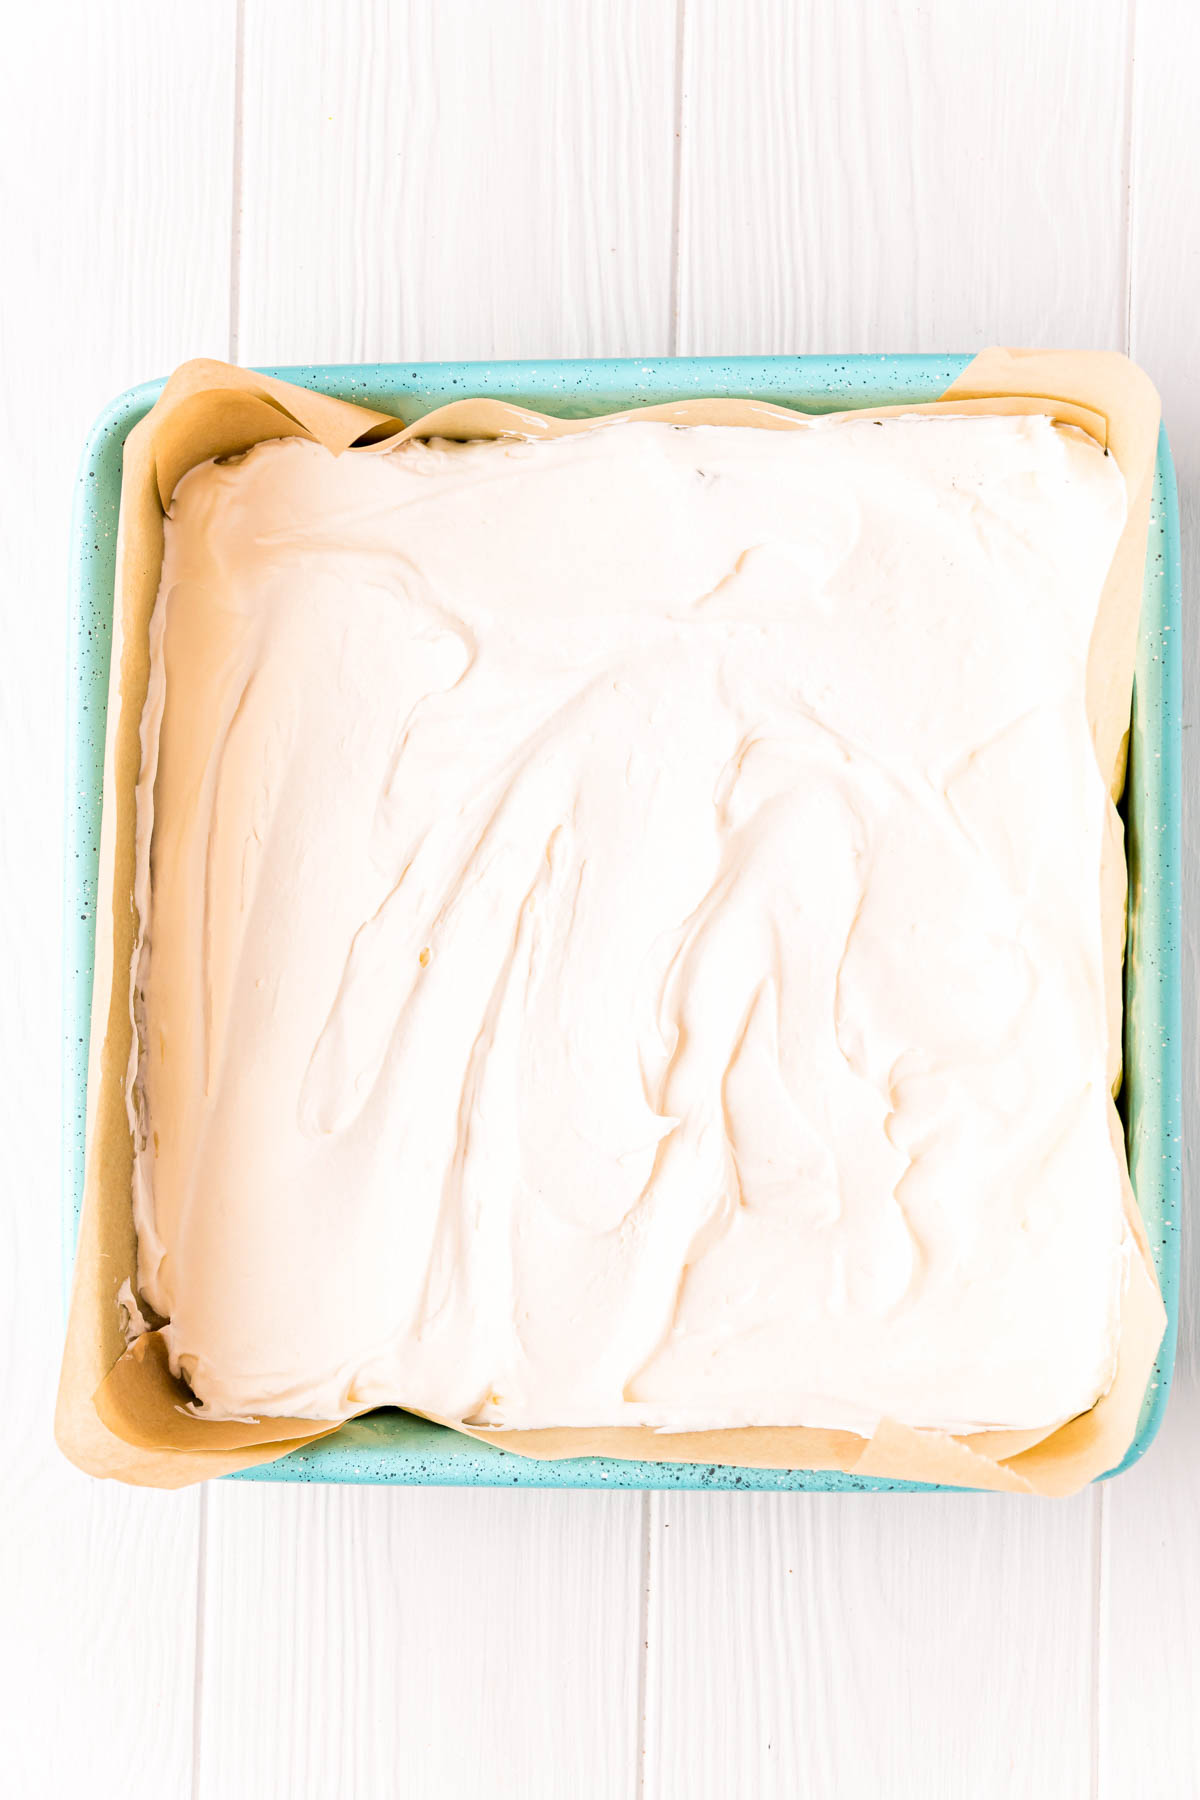 Cool Whip layer in a square pan